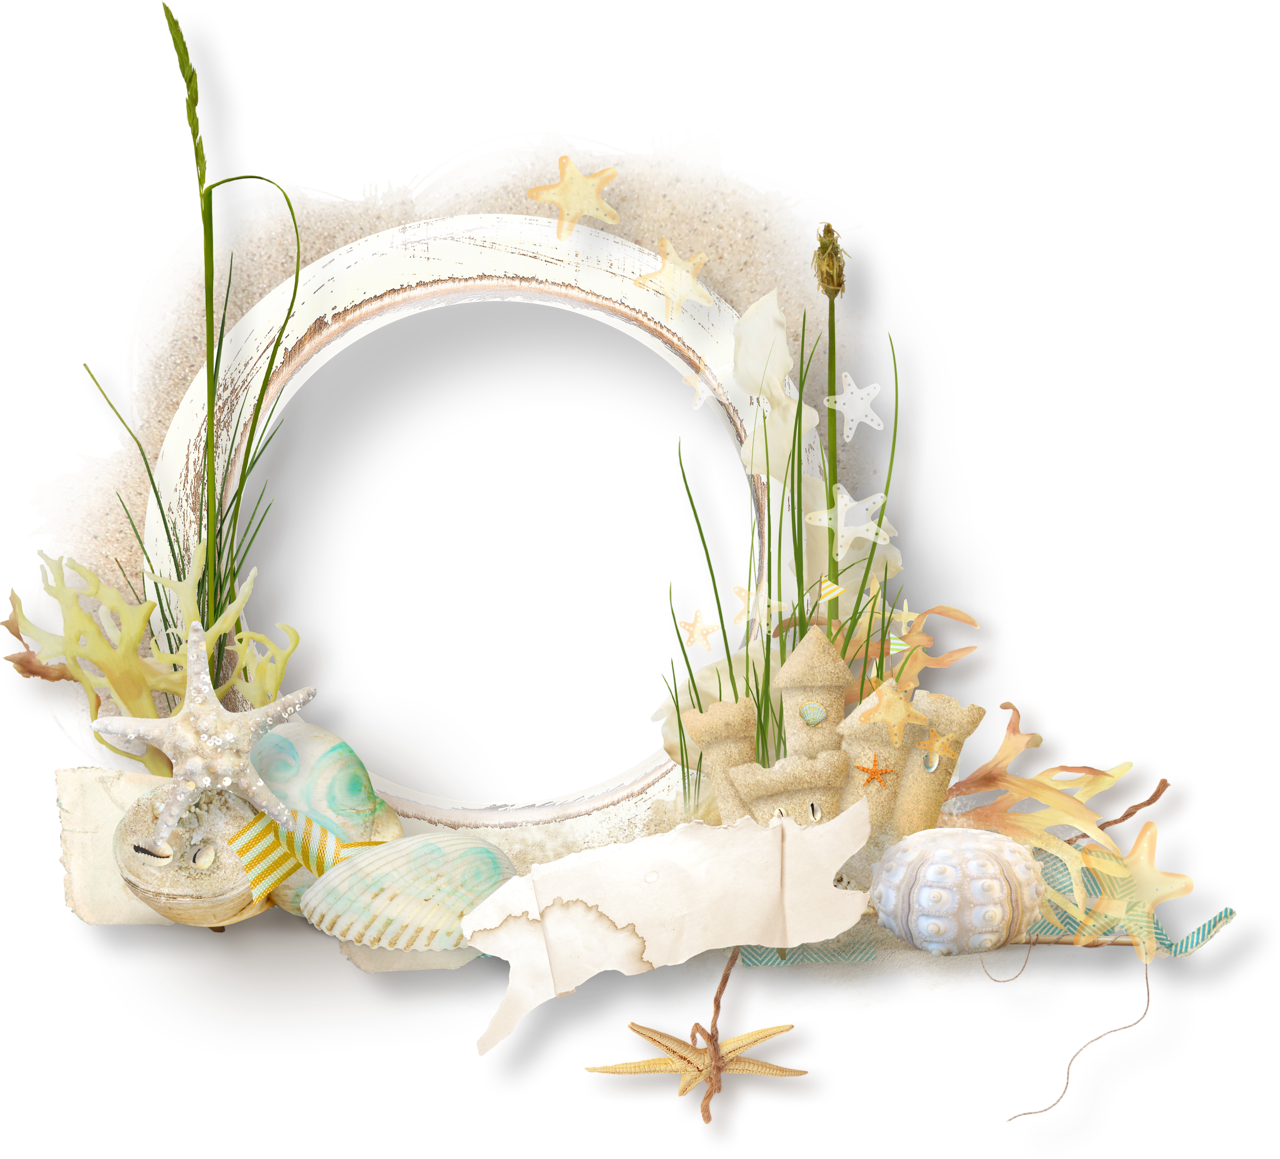 Seaside clipart beach frame #7